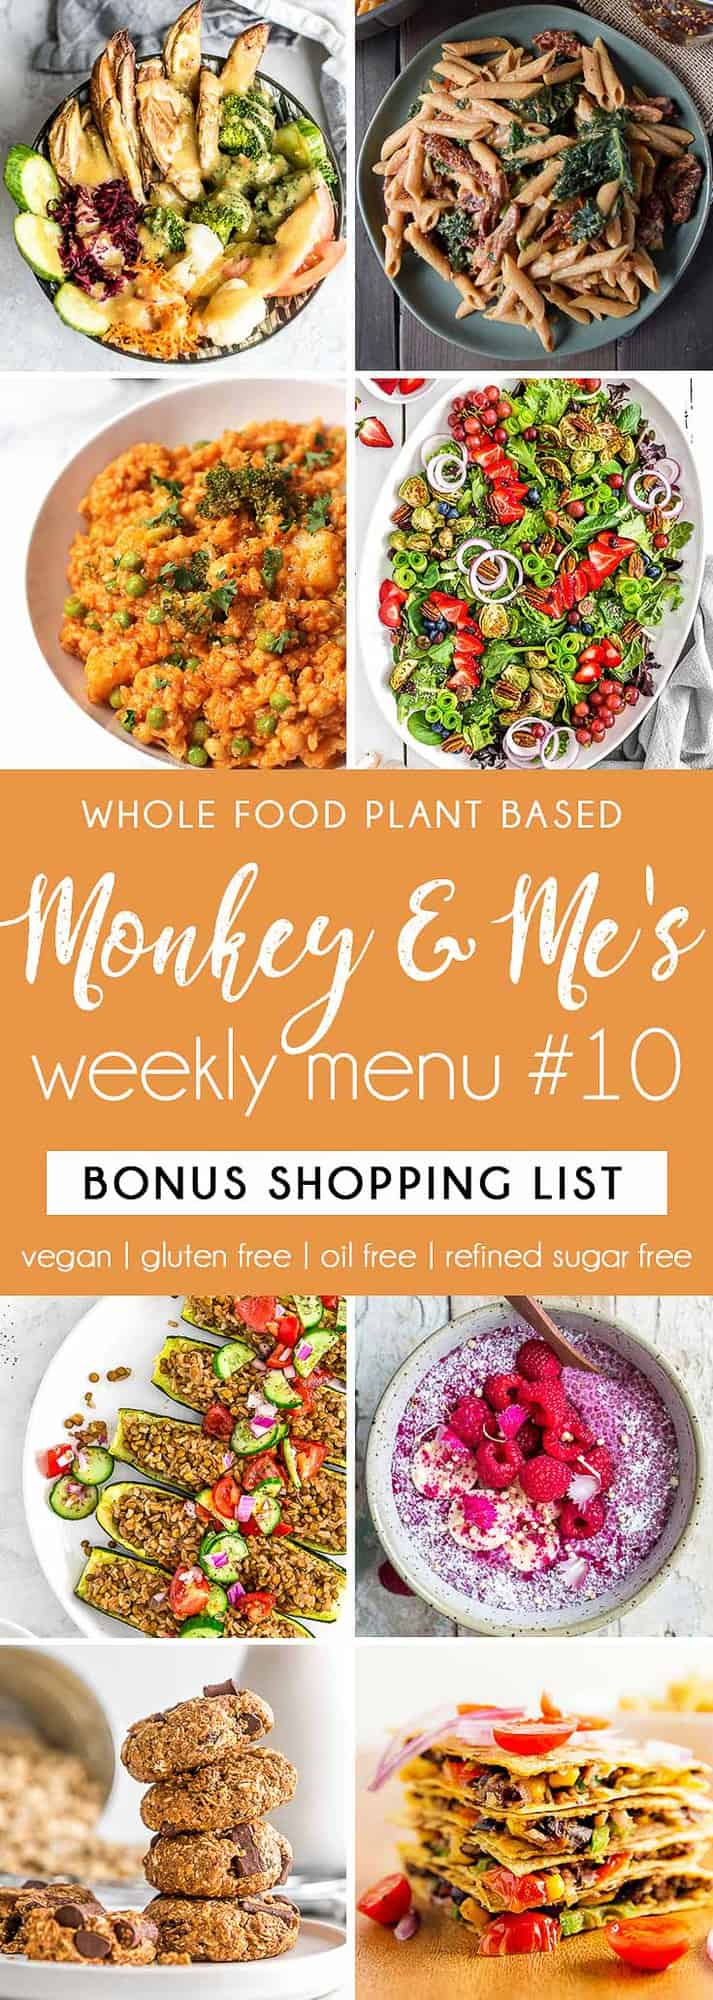 Monkey and Me's Menu, Menu 10, weekly recipe plan, menu, planner, plant based, vegan, vegetarian, whole food plant based, gluten free, recipe, wfpb, healthy, healthy vegan, oil free, no refined sugar, no oil, refined sugar free, dairy free, dinner, lunch, menu, plant based menu, vegan menu, weekly menu, meal plan, vegan meal plan, plant based meal plan, shopping list